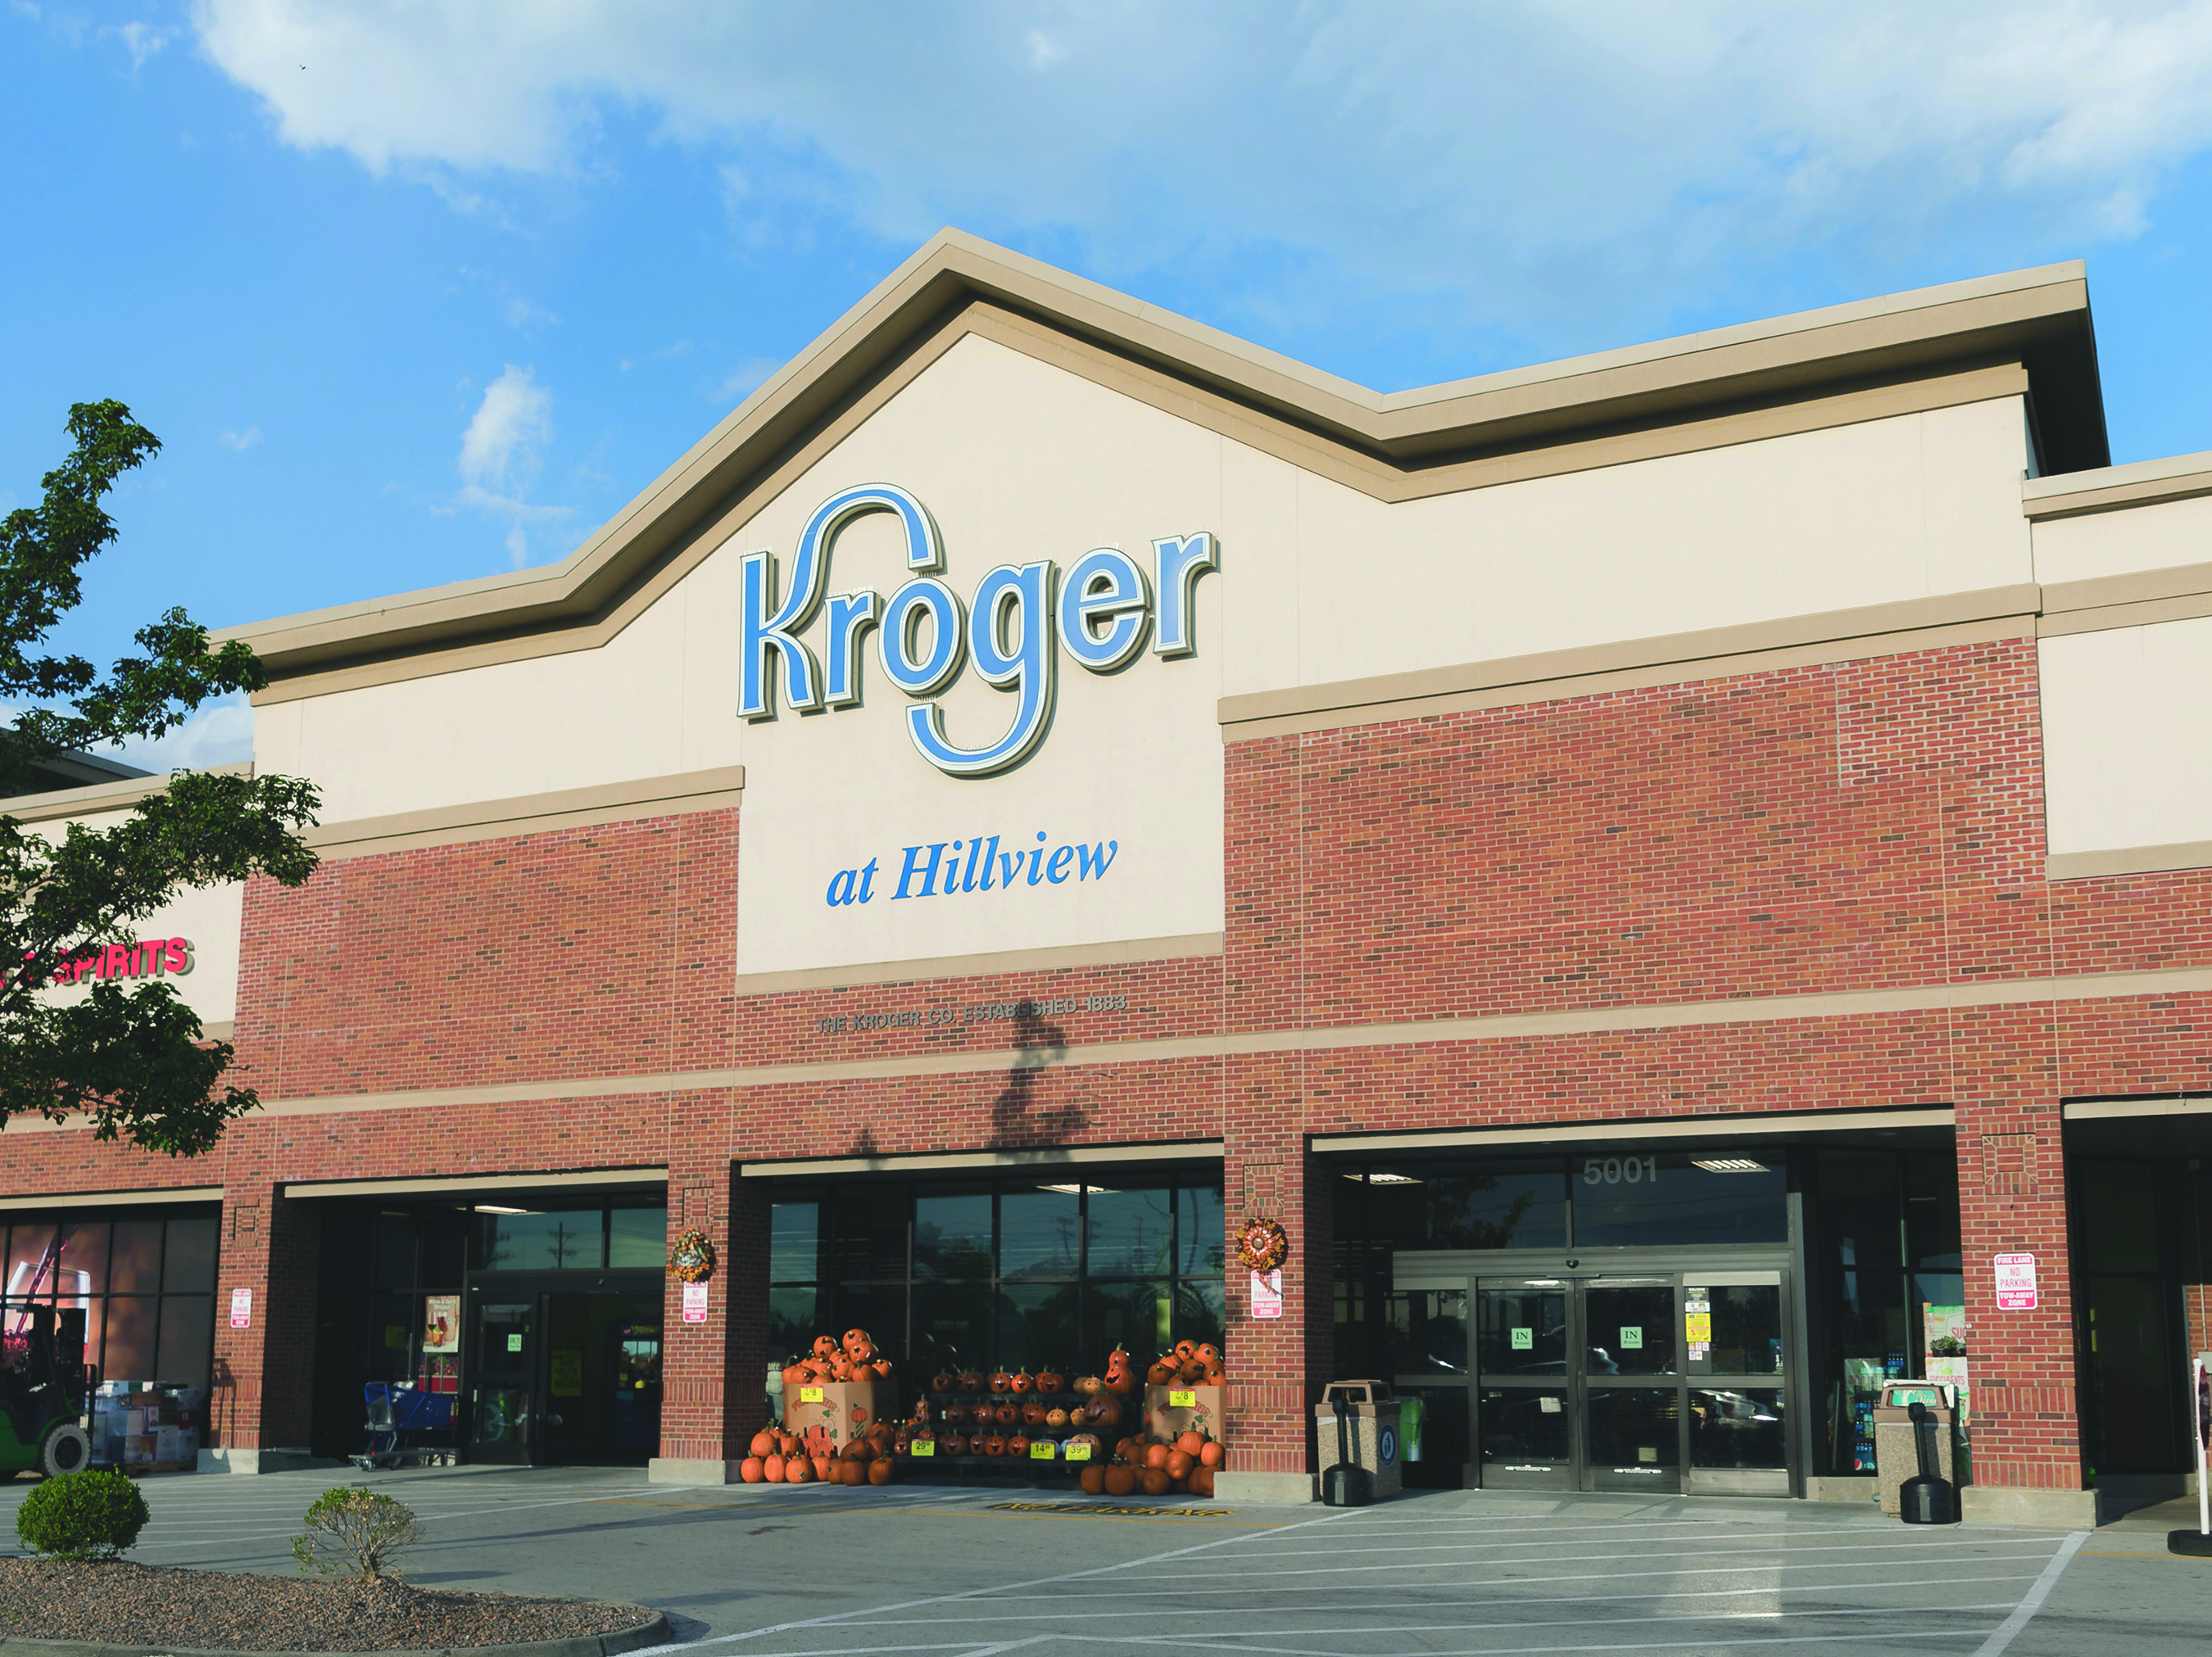 MIRANDA_CONSTRUCTION_LOUISVILLE_KROGER